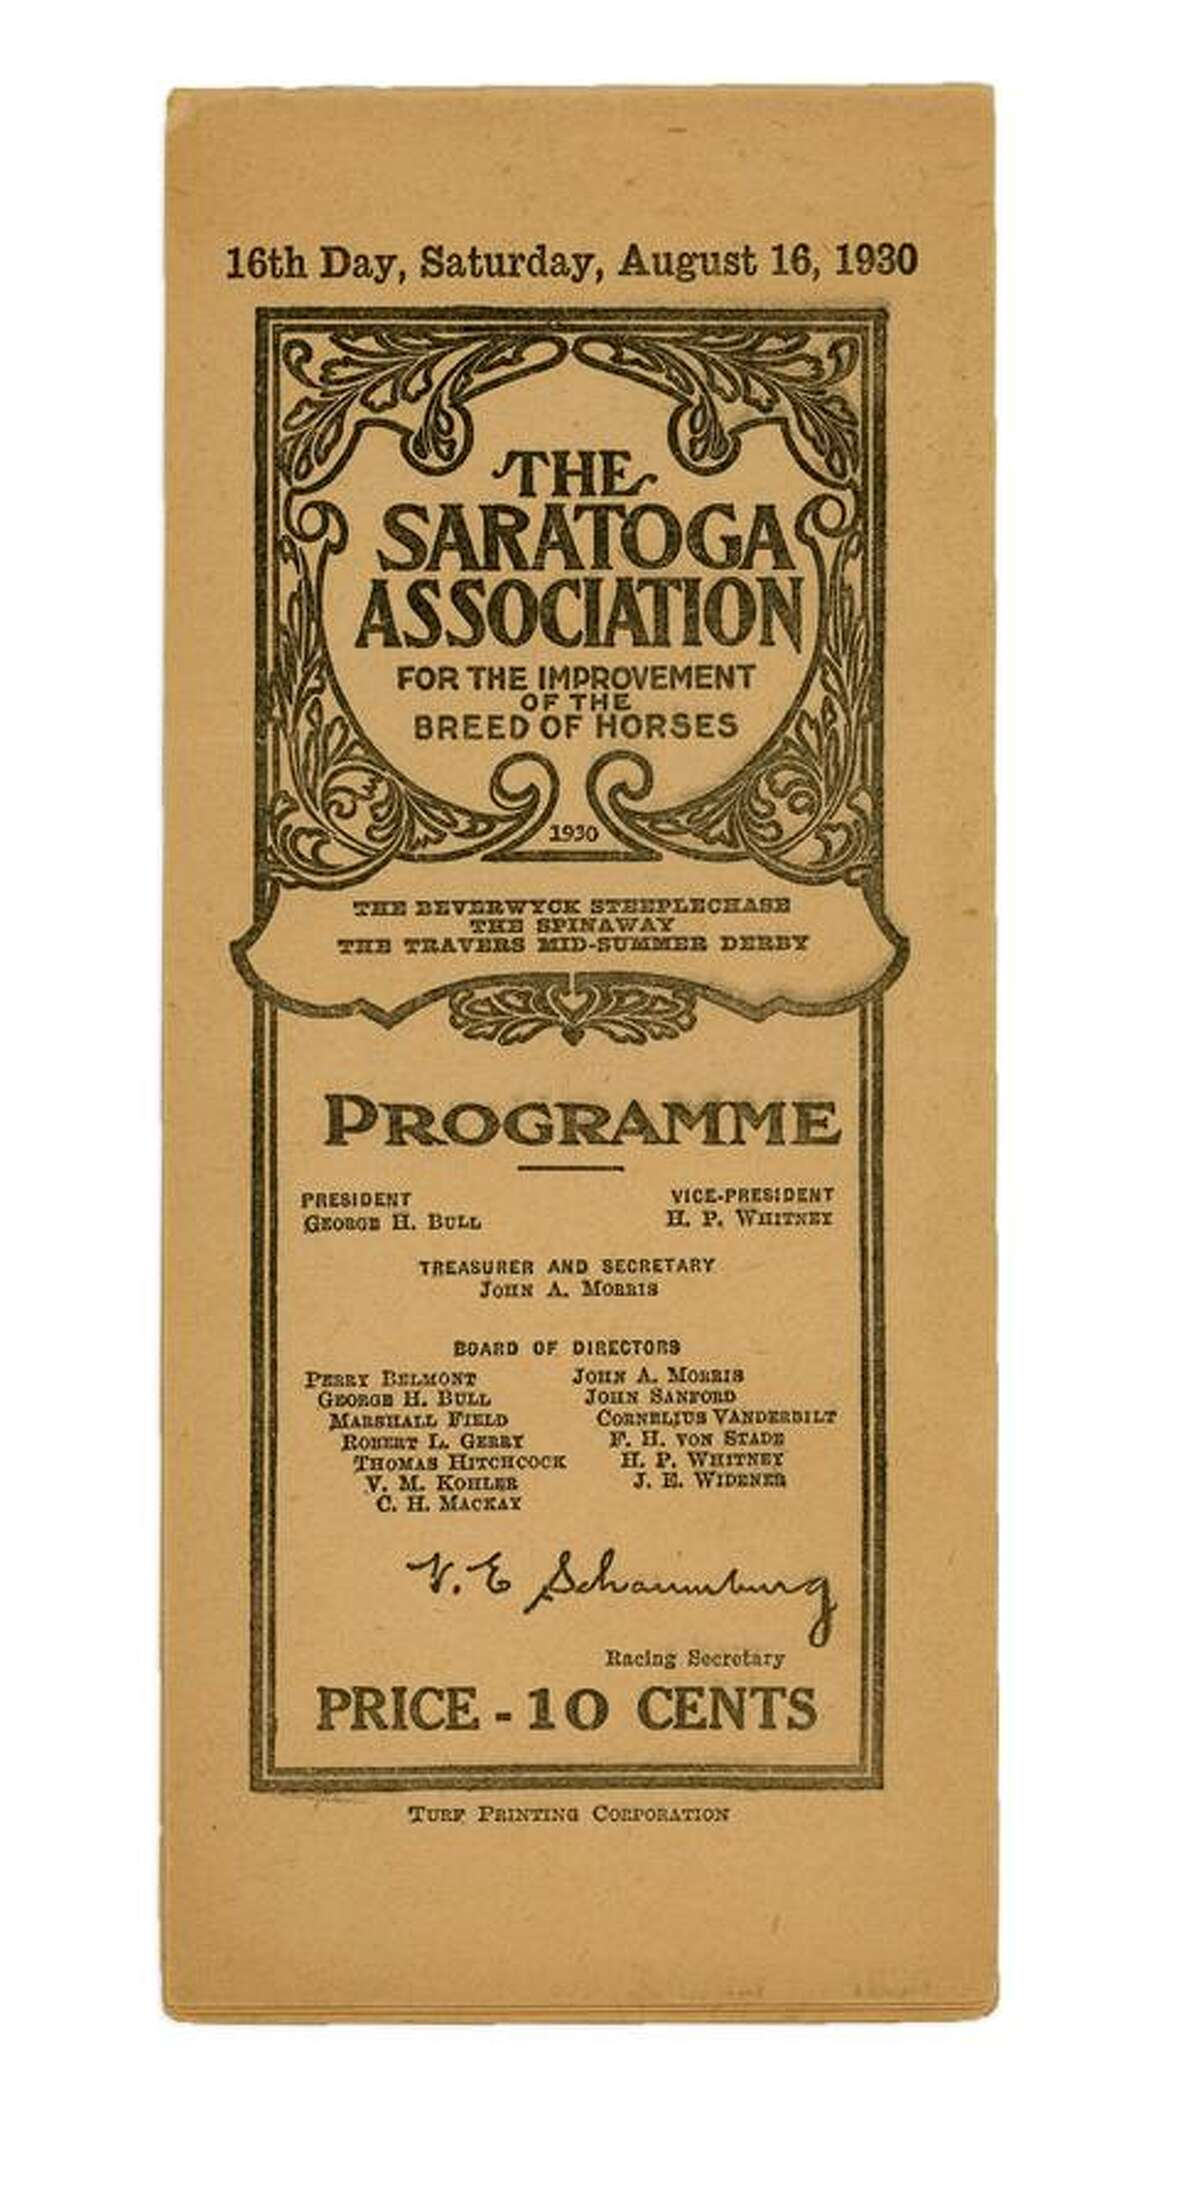 In 1930, Gallant Fox won the Triple Crown, but fell to Jim Dandy in the Travers. Here's a program from the day.